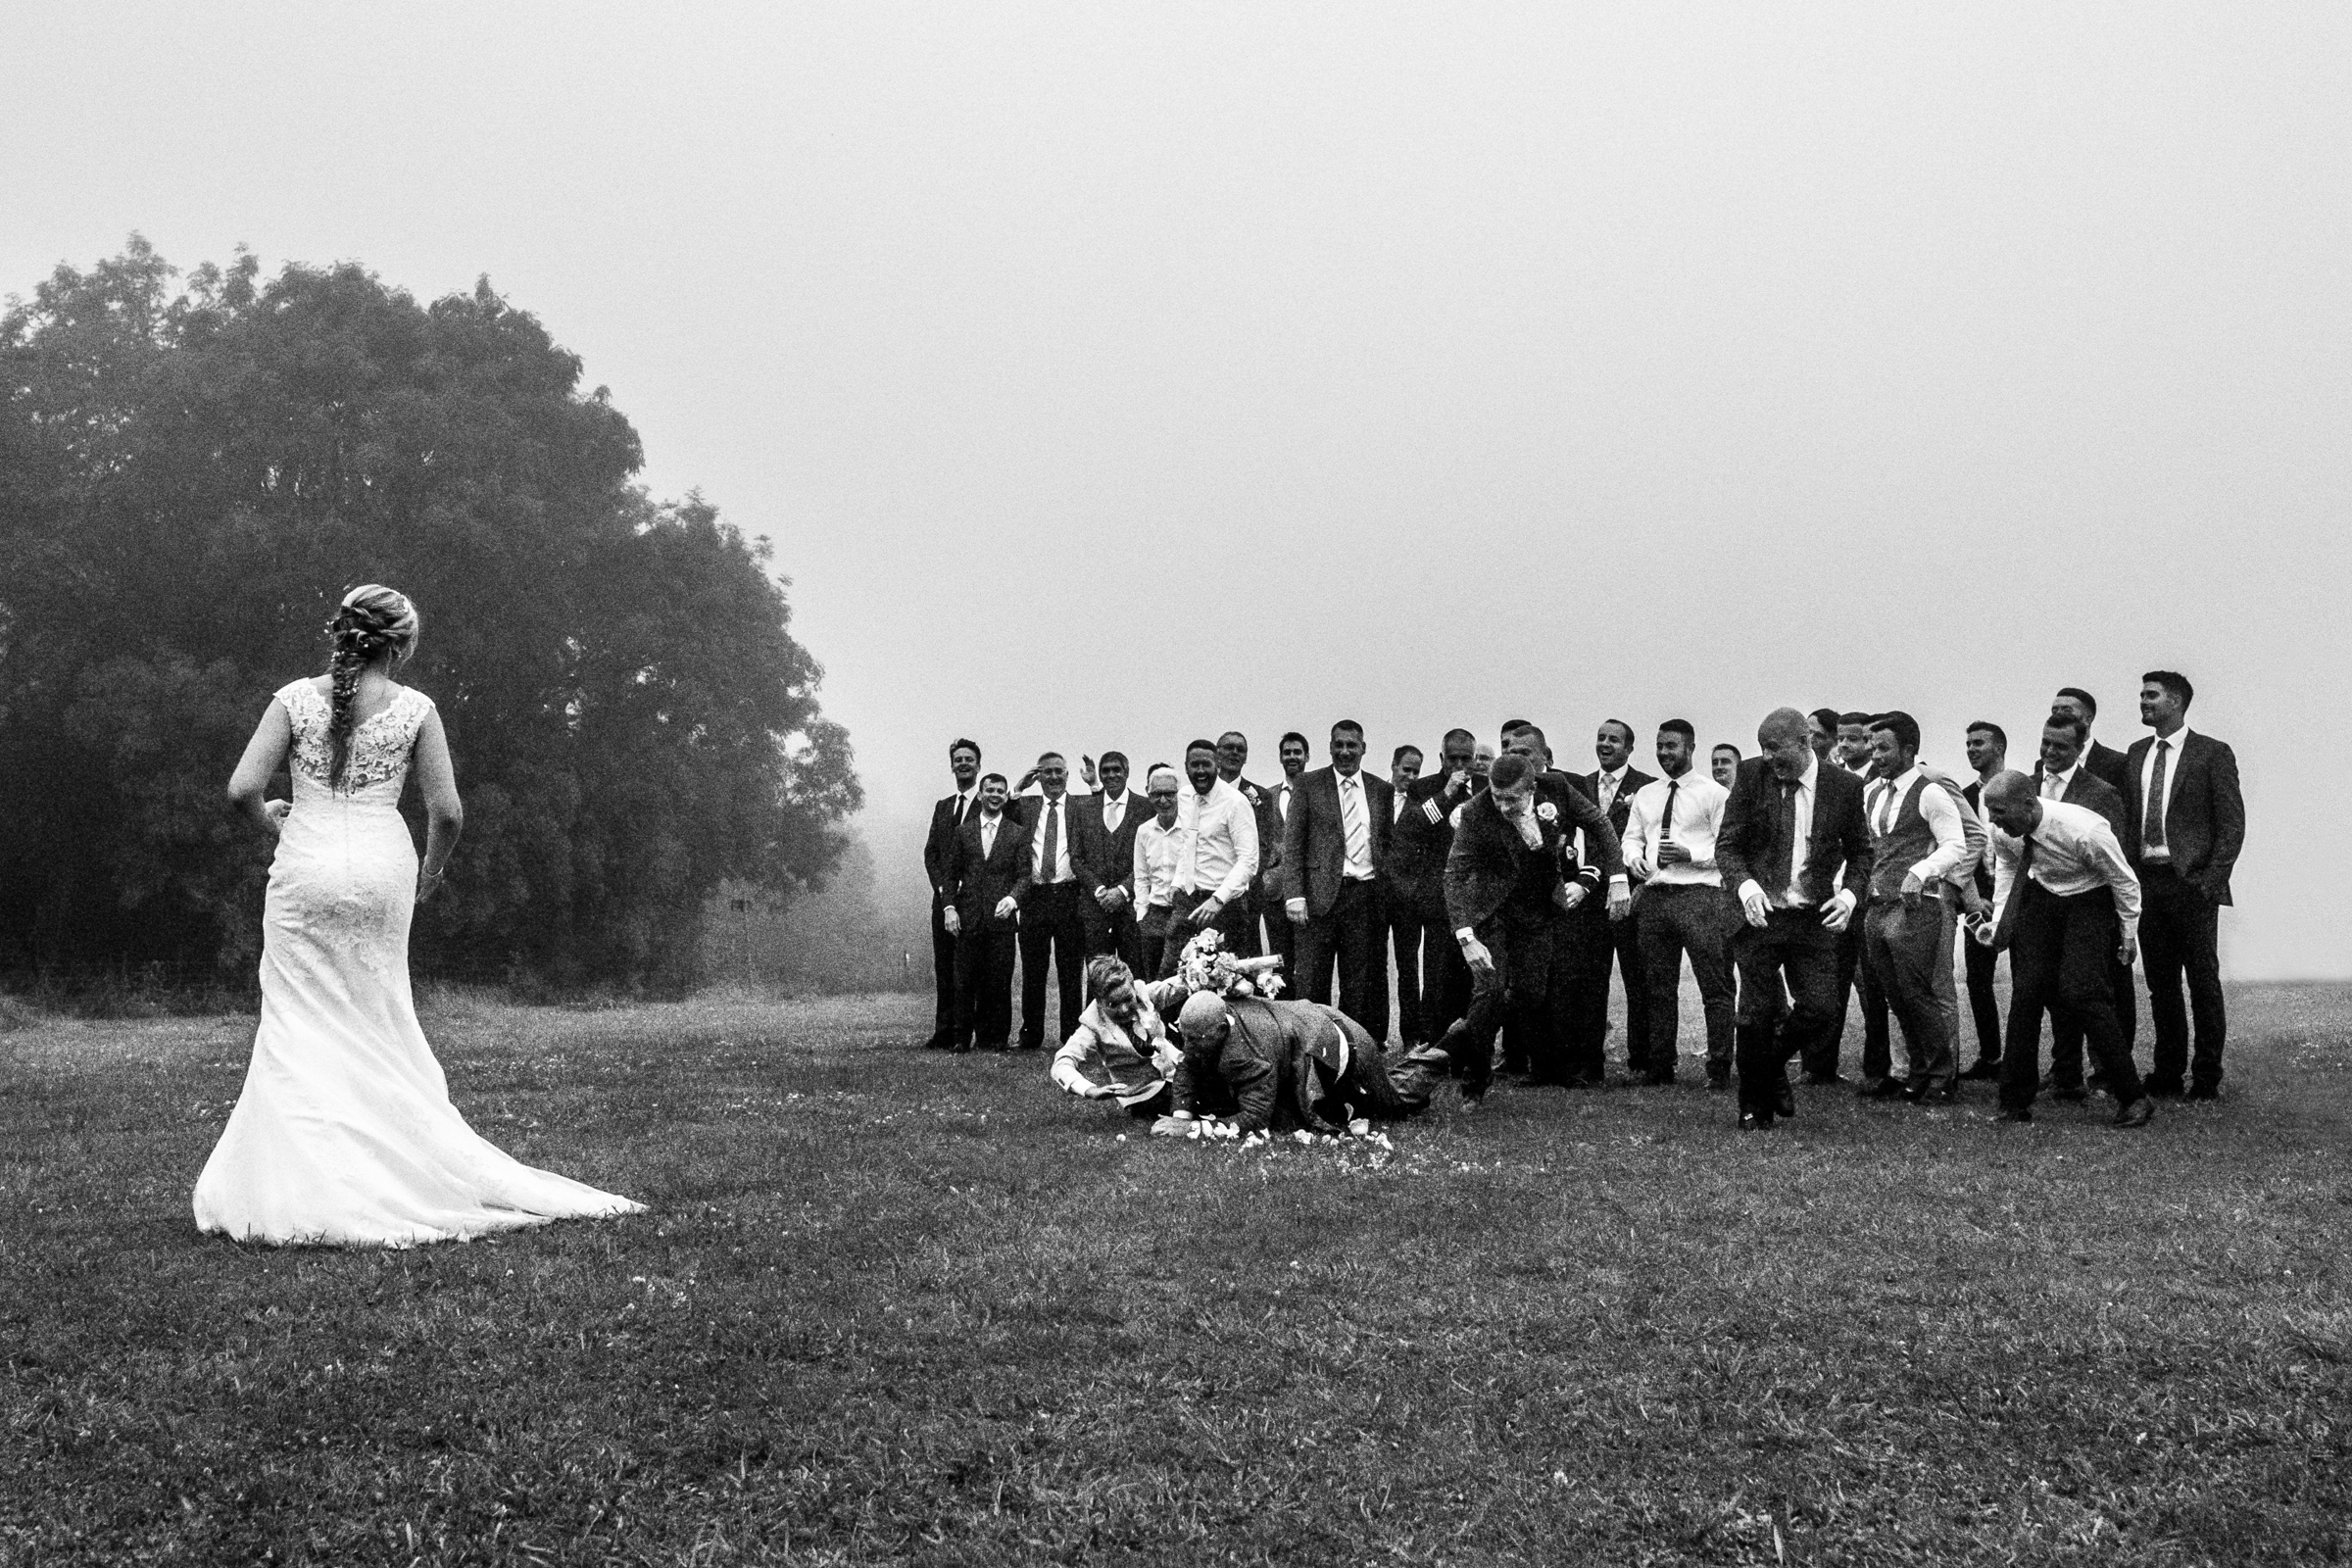 Guys go after bouquet and cause a mishap - M & G Wedding Photography - UK wedding photographers -